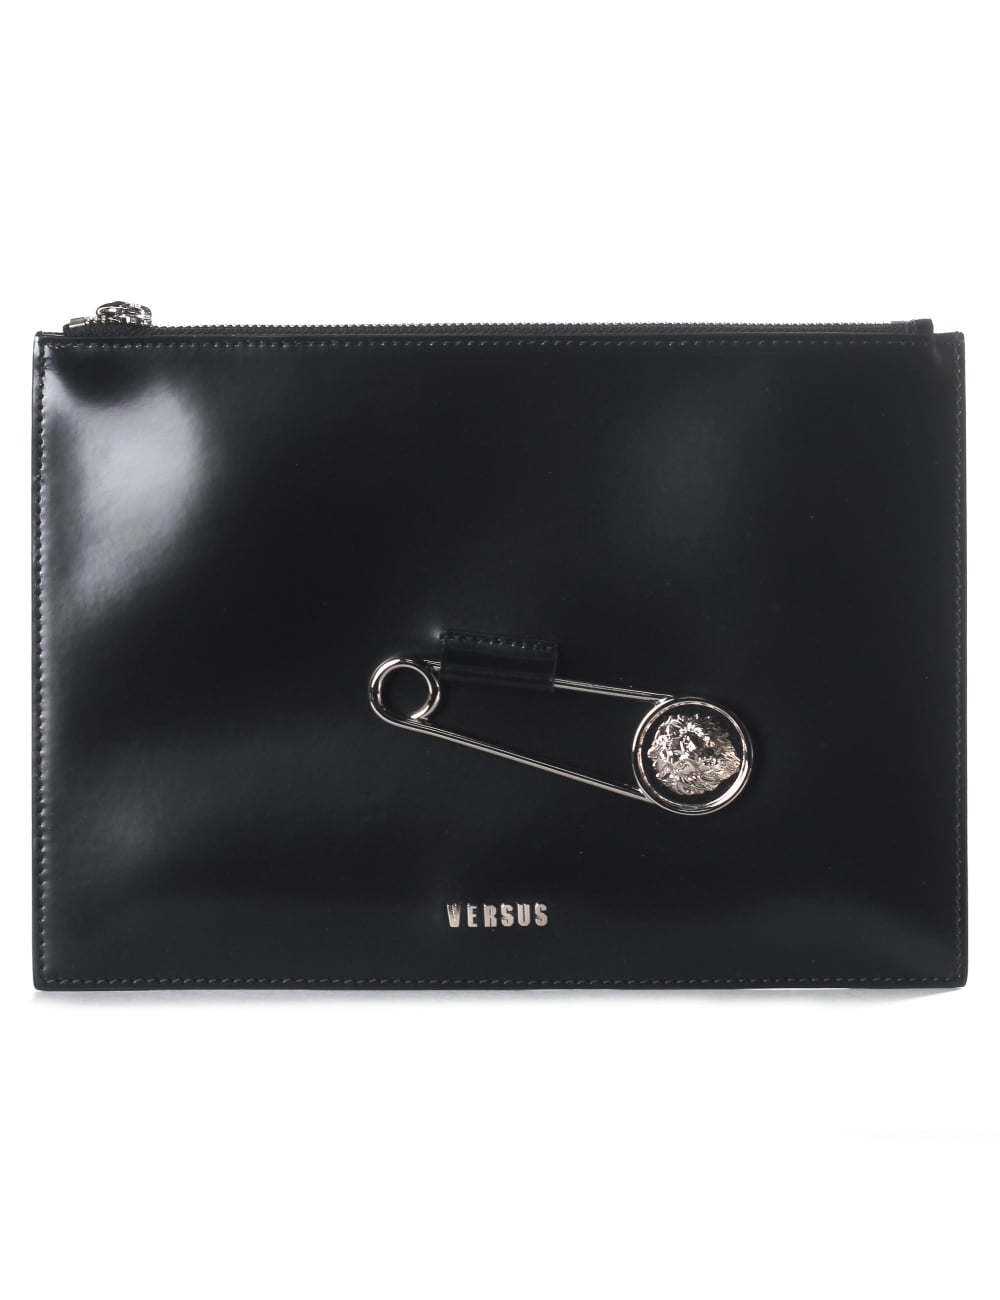 f4cbc86ada Versus Versace Safety Pin Women s Large Pouch Clutch